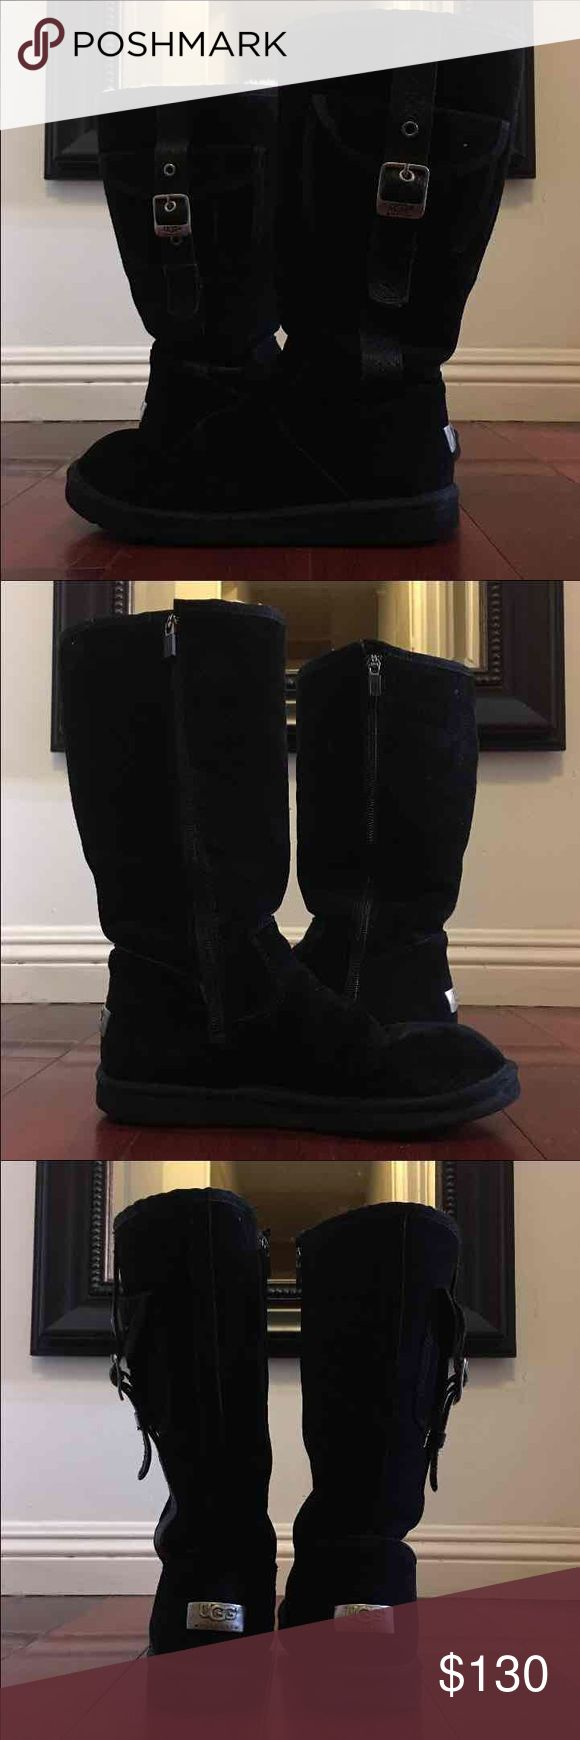 UGG Australia Retro Cargo Boots So comfy, so soft, so warm! UGG Shoes